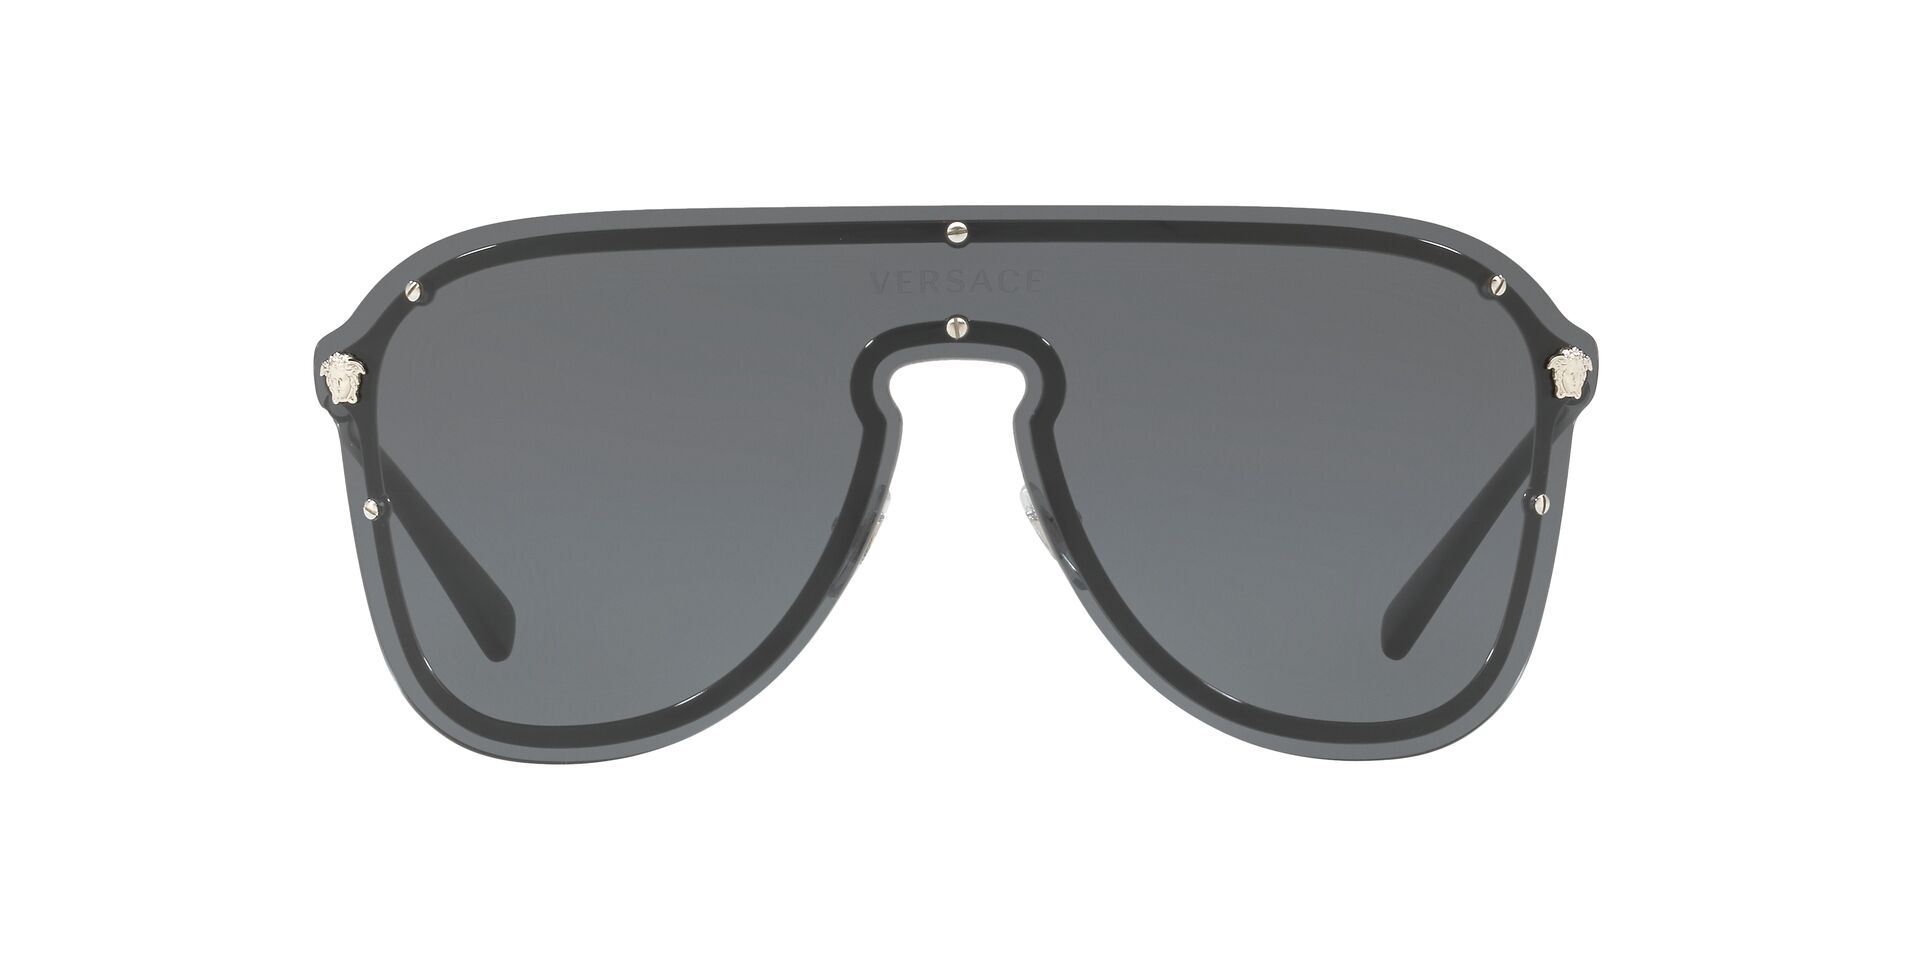 Versace - VE2180 Black/Gray Wrap Unisex Sunglasses - 125mm-Sunglasses-Designer Eyes